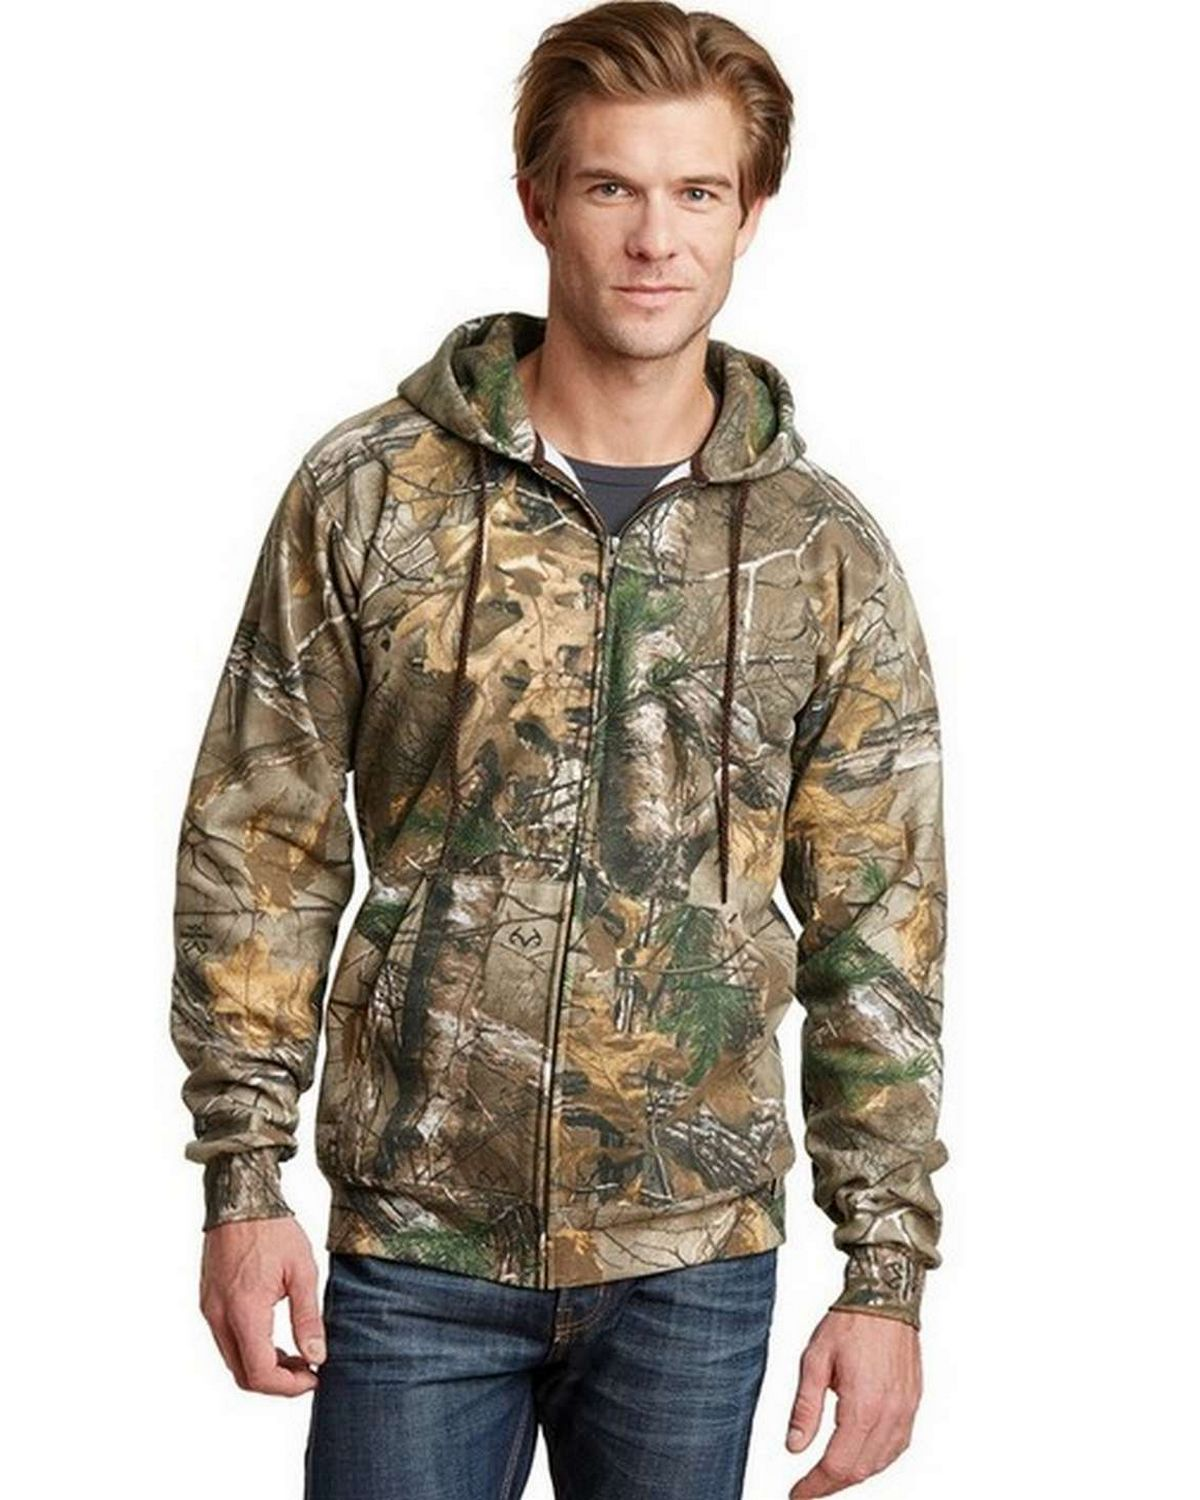 Russell Outdoors RO78ZH s Realtree Full-Zip Hooded Sweatshirt